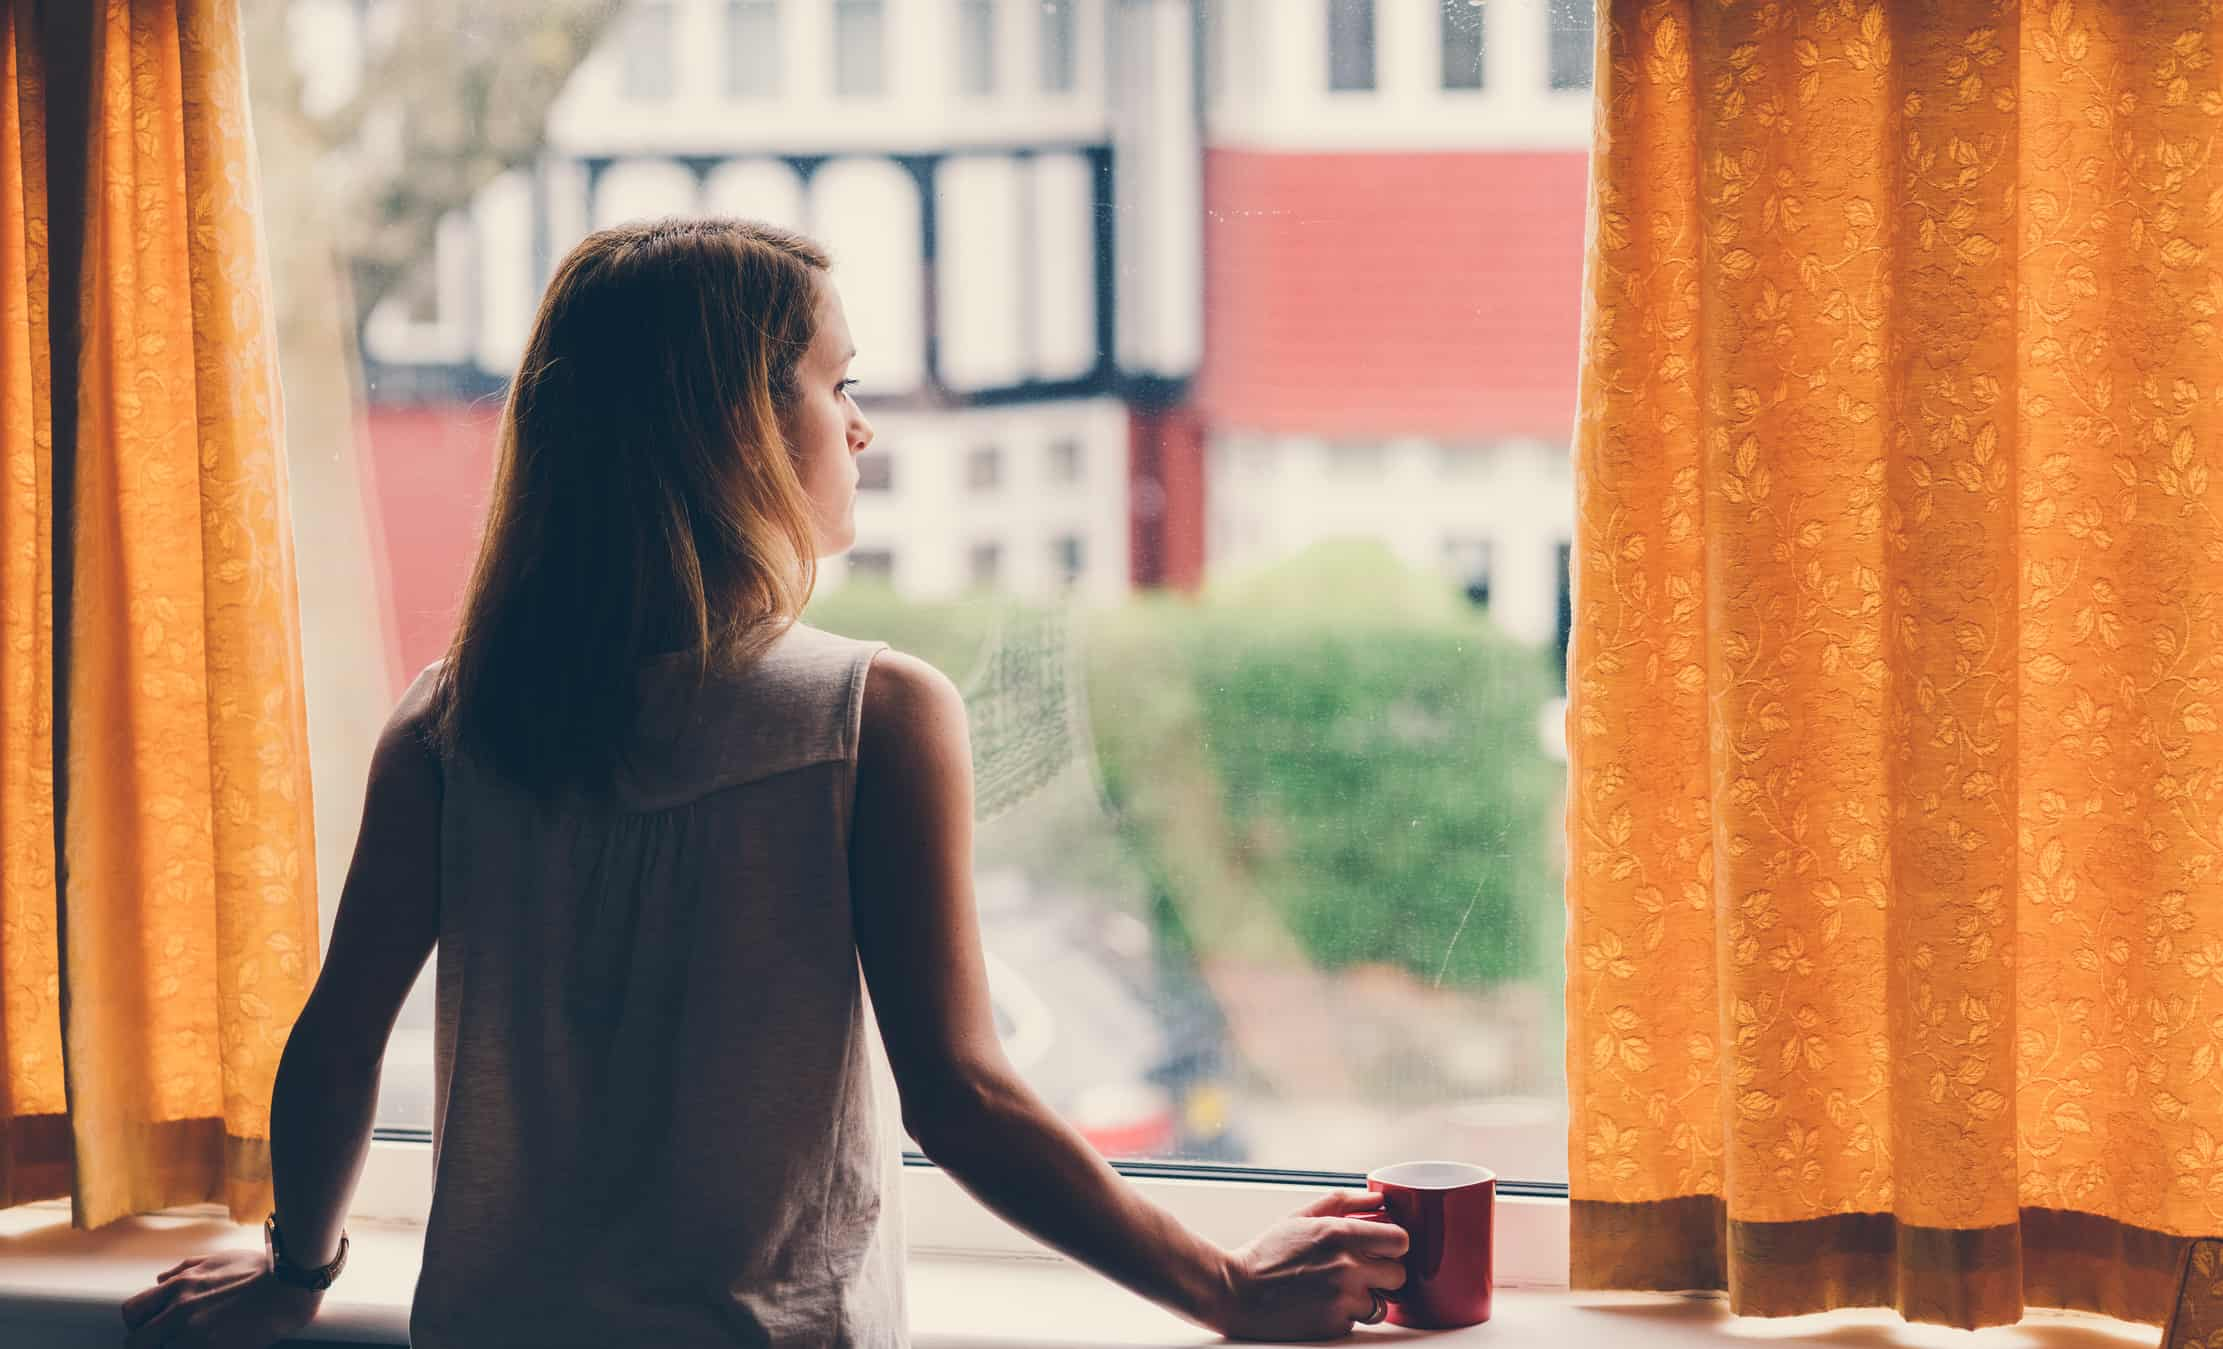 A sad, lonely woman worried about finances looks out a window with coffee